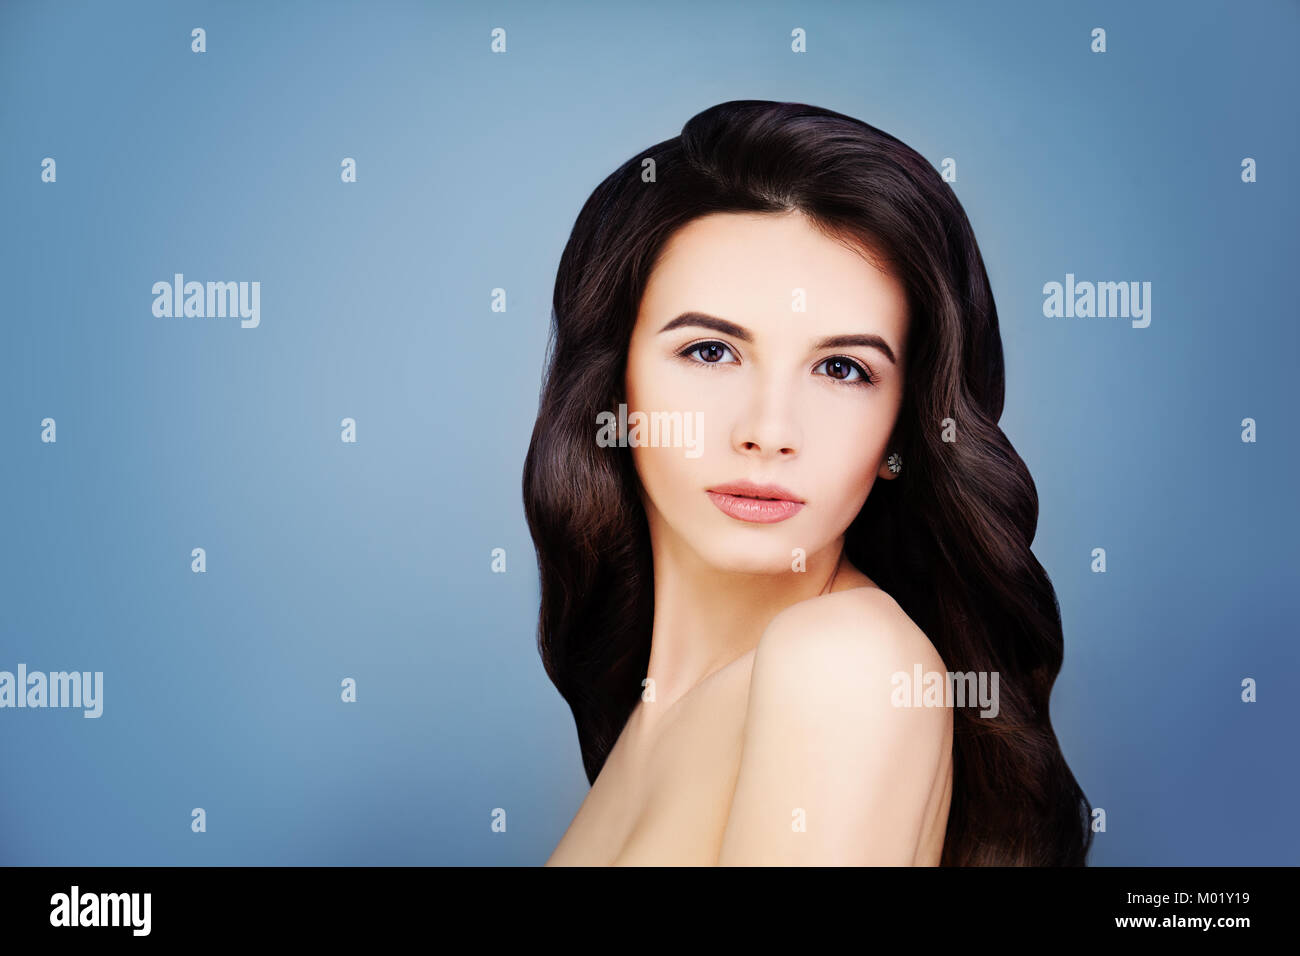 80d8a35014b Healthy Brunette Girl with Long Brown Hair and Clear Skin. Portrait of Spa  Woman